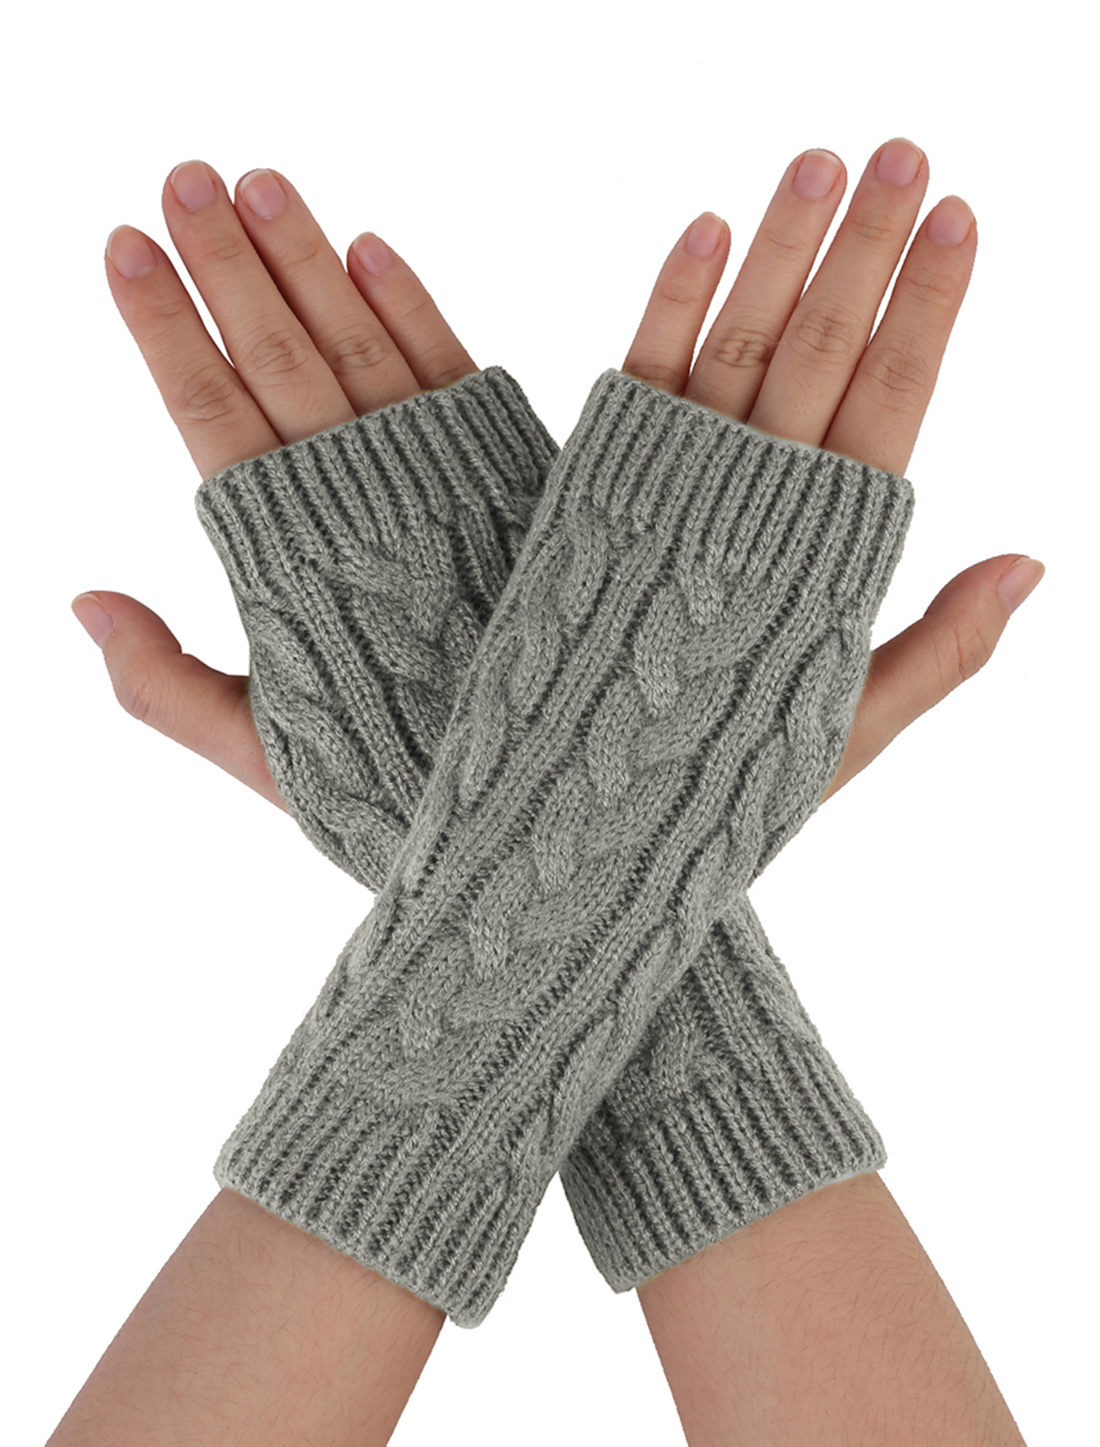 Unisex Light Gray Textured Design Warm Knitting Ribbed Winter Gloves